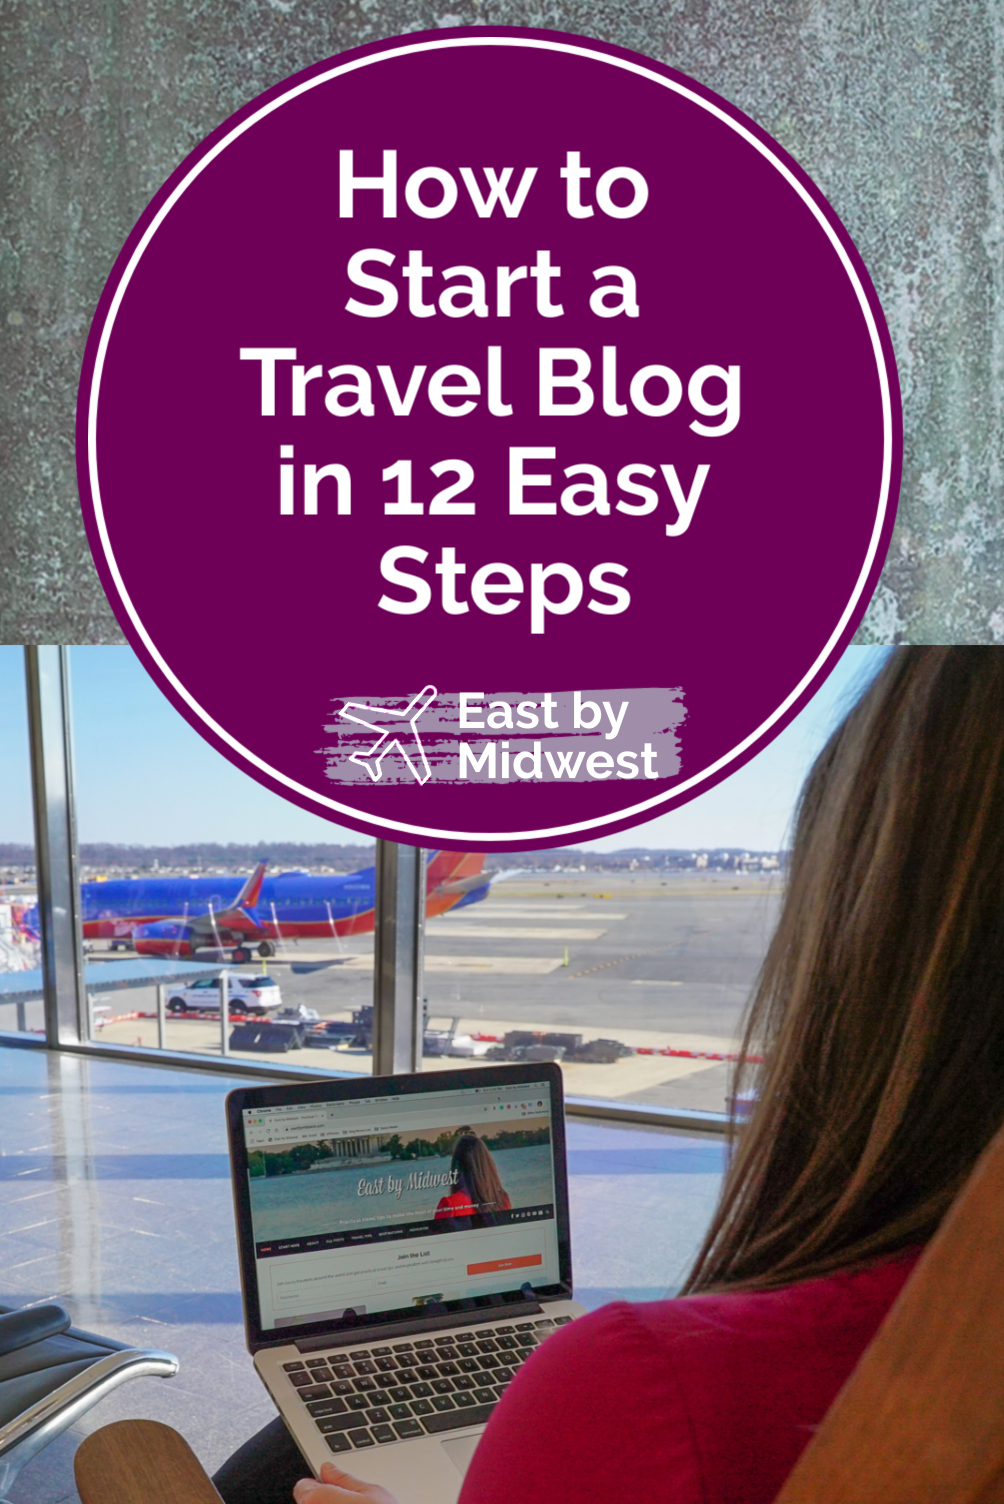 How to Start a Travel Blog in 12 Easy Steps